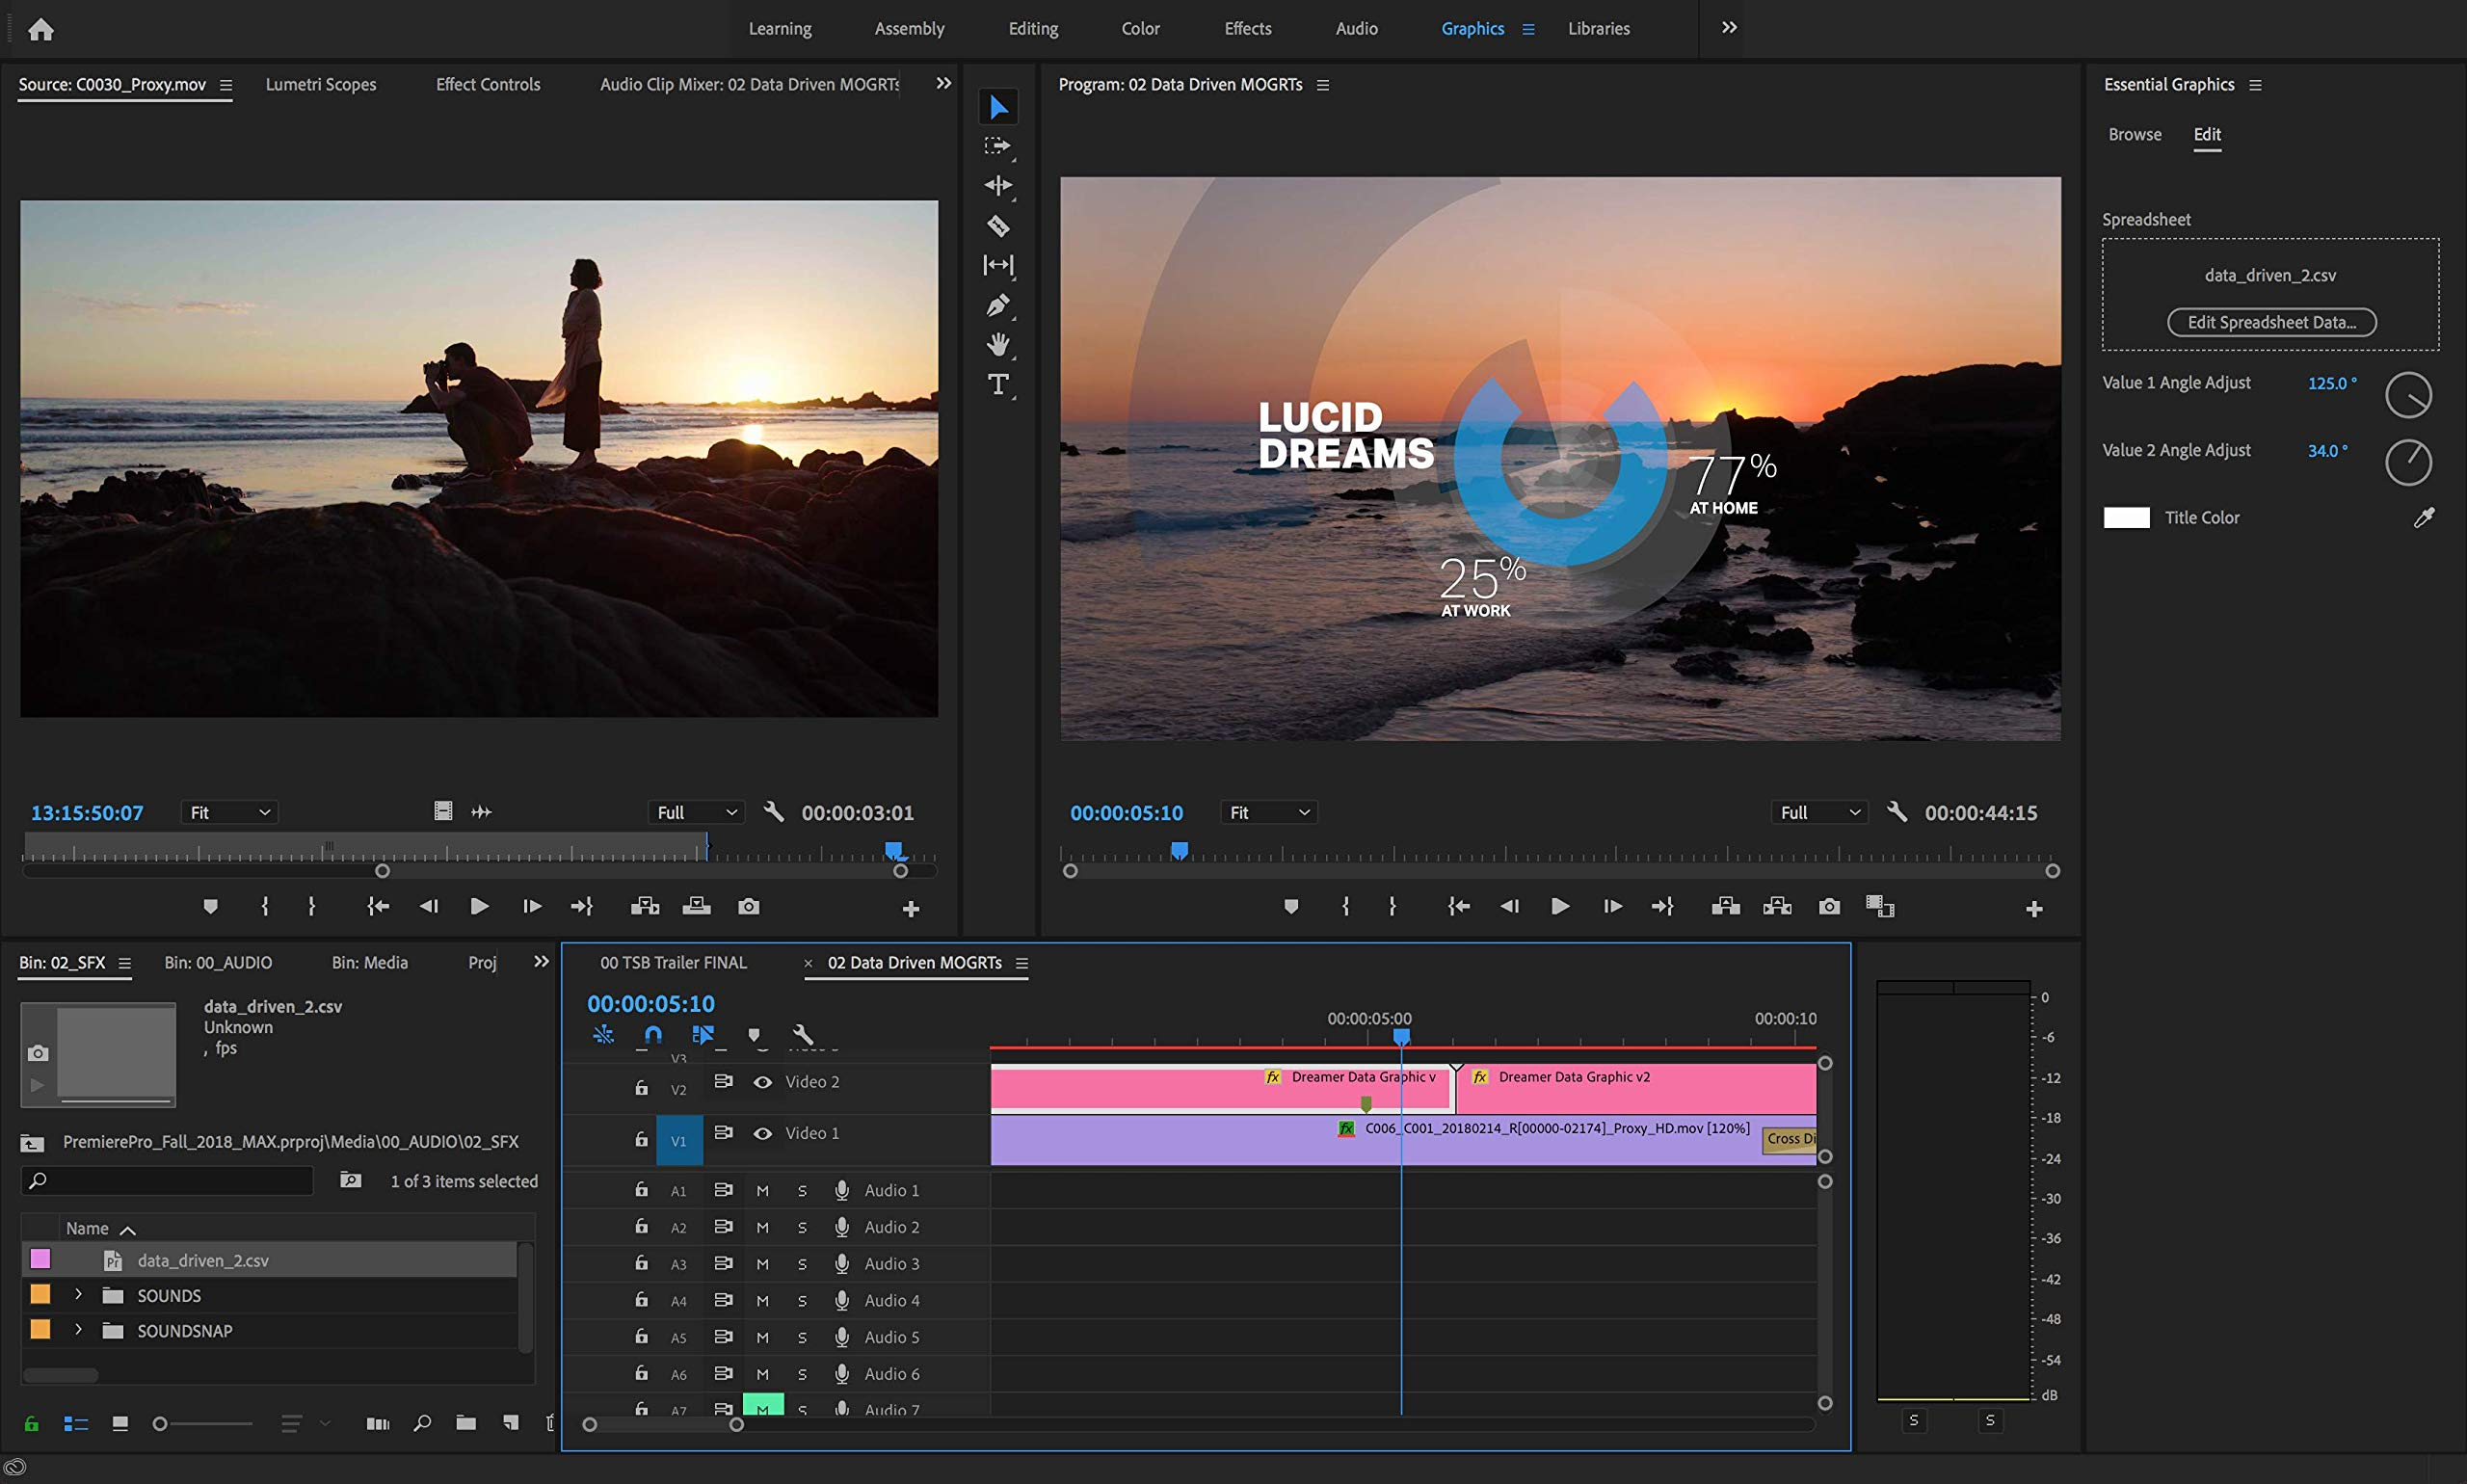 Adobe Premiere Pro | Video editing and production software | 1-month Subscription with auto-renewal, PC/Mac by Adobe